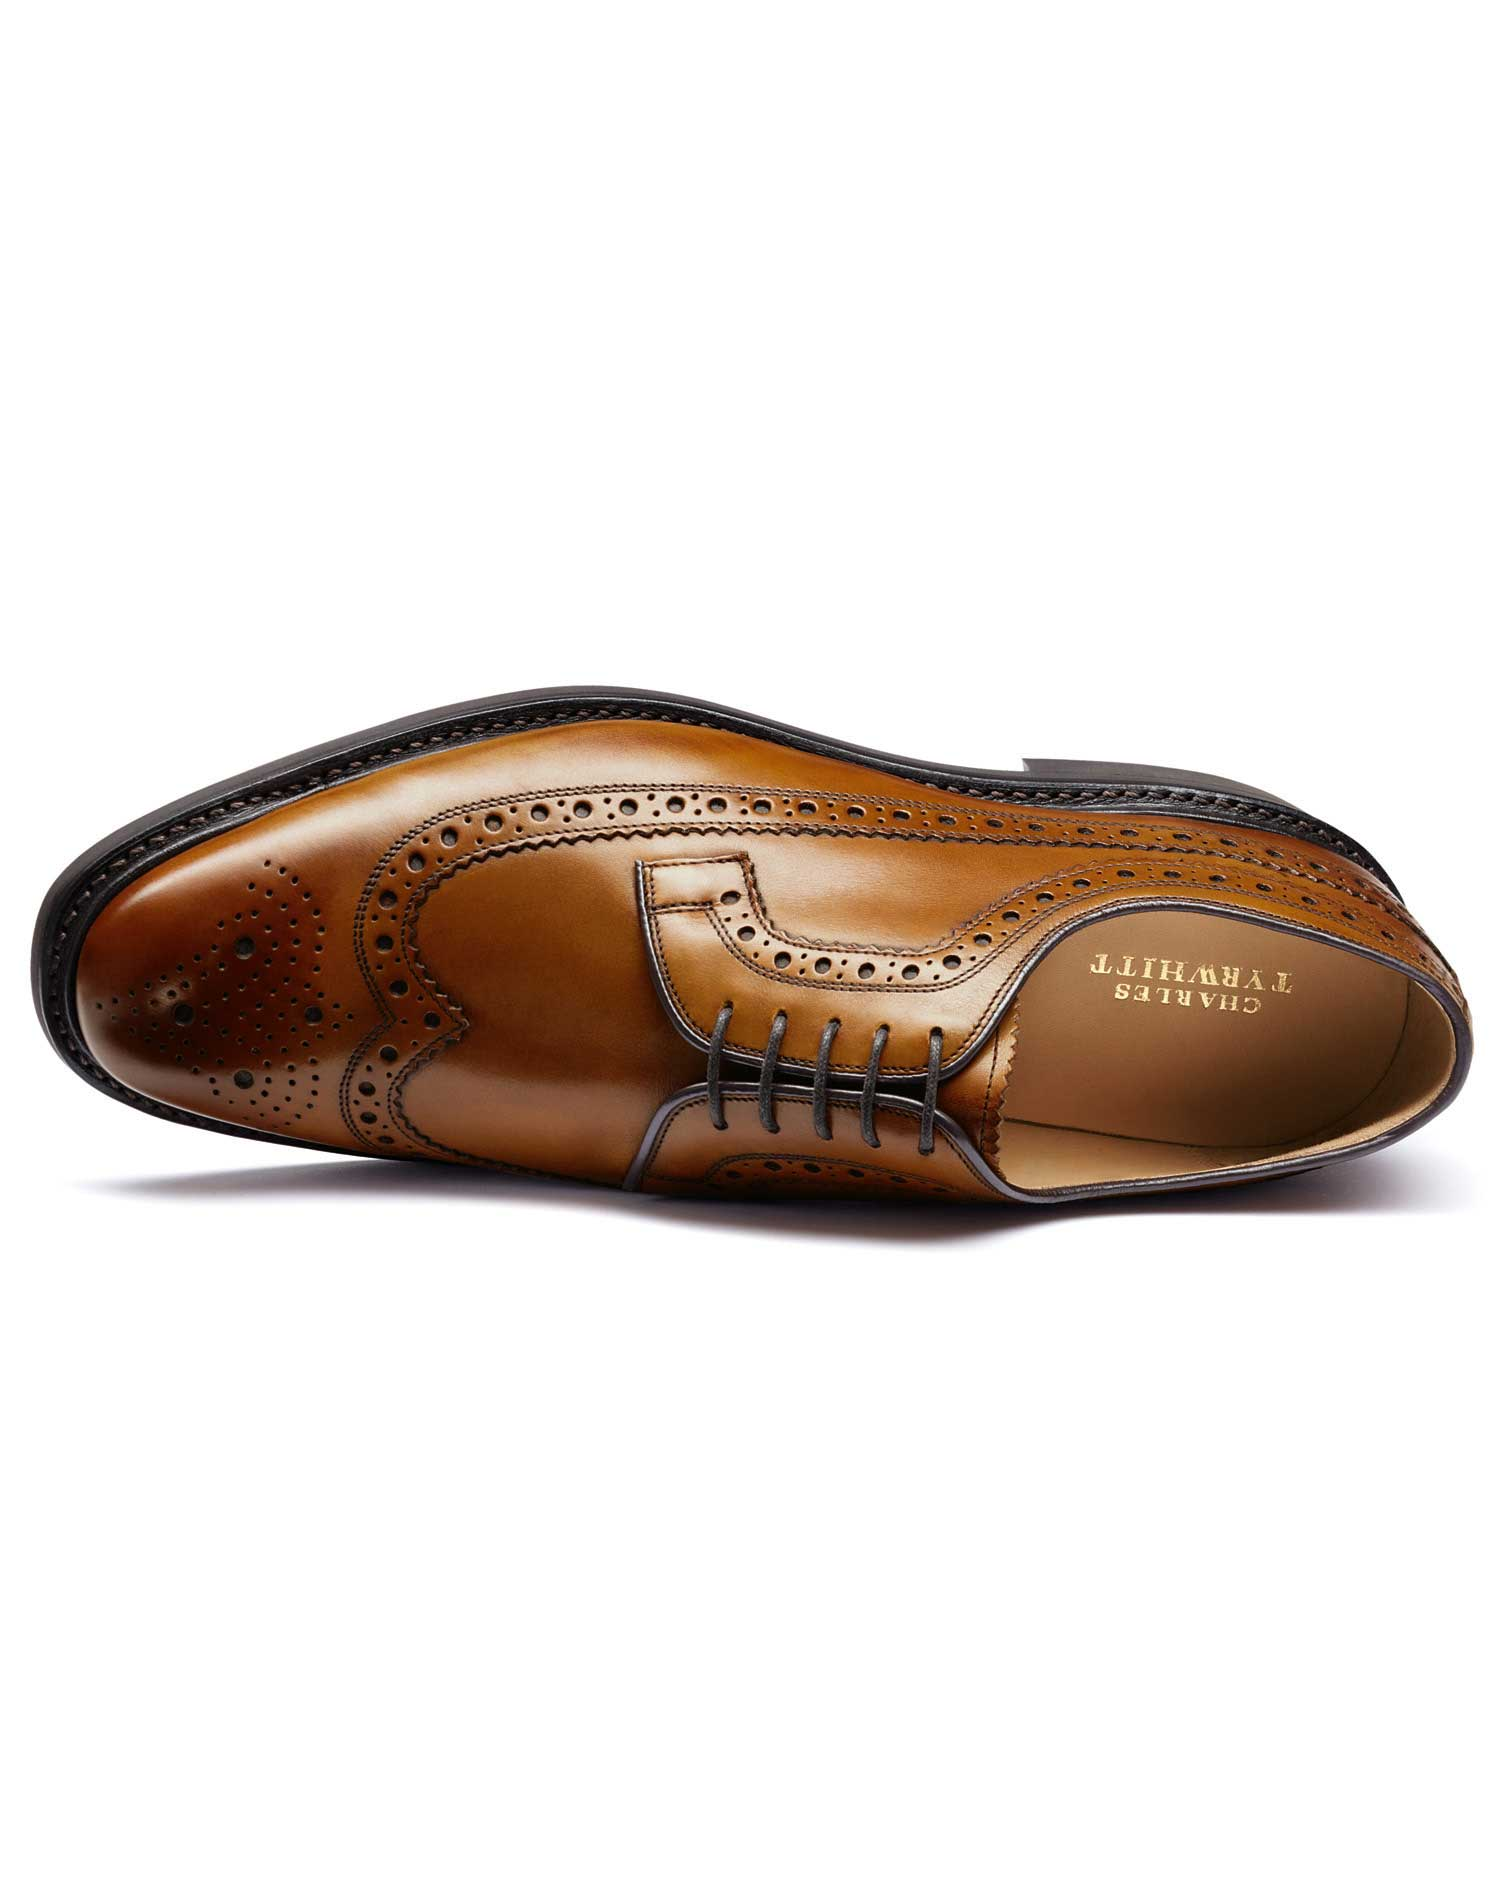 Tan Goodyear Welted Derby Brogue Shoe Size 9 W by Charles Tyrwhitt